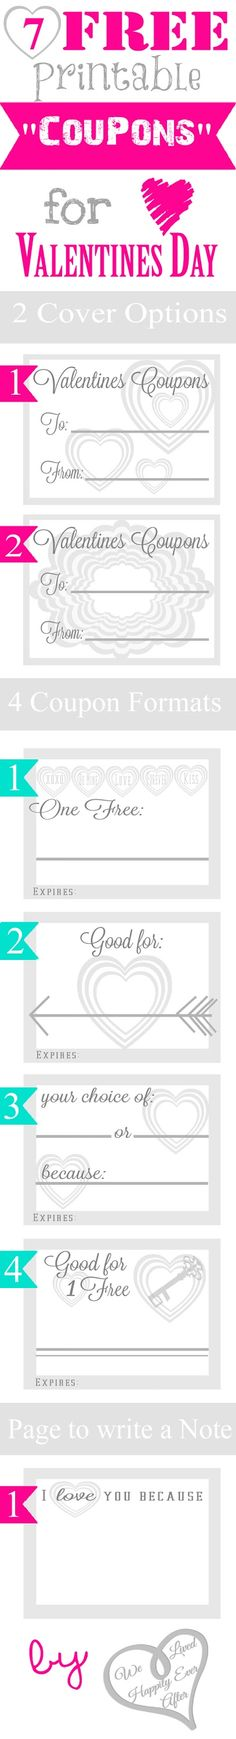 "7 Free Printable ""Coupons"" for Valentine's Day"